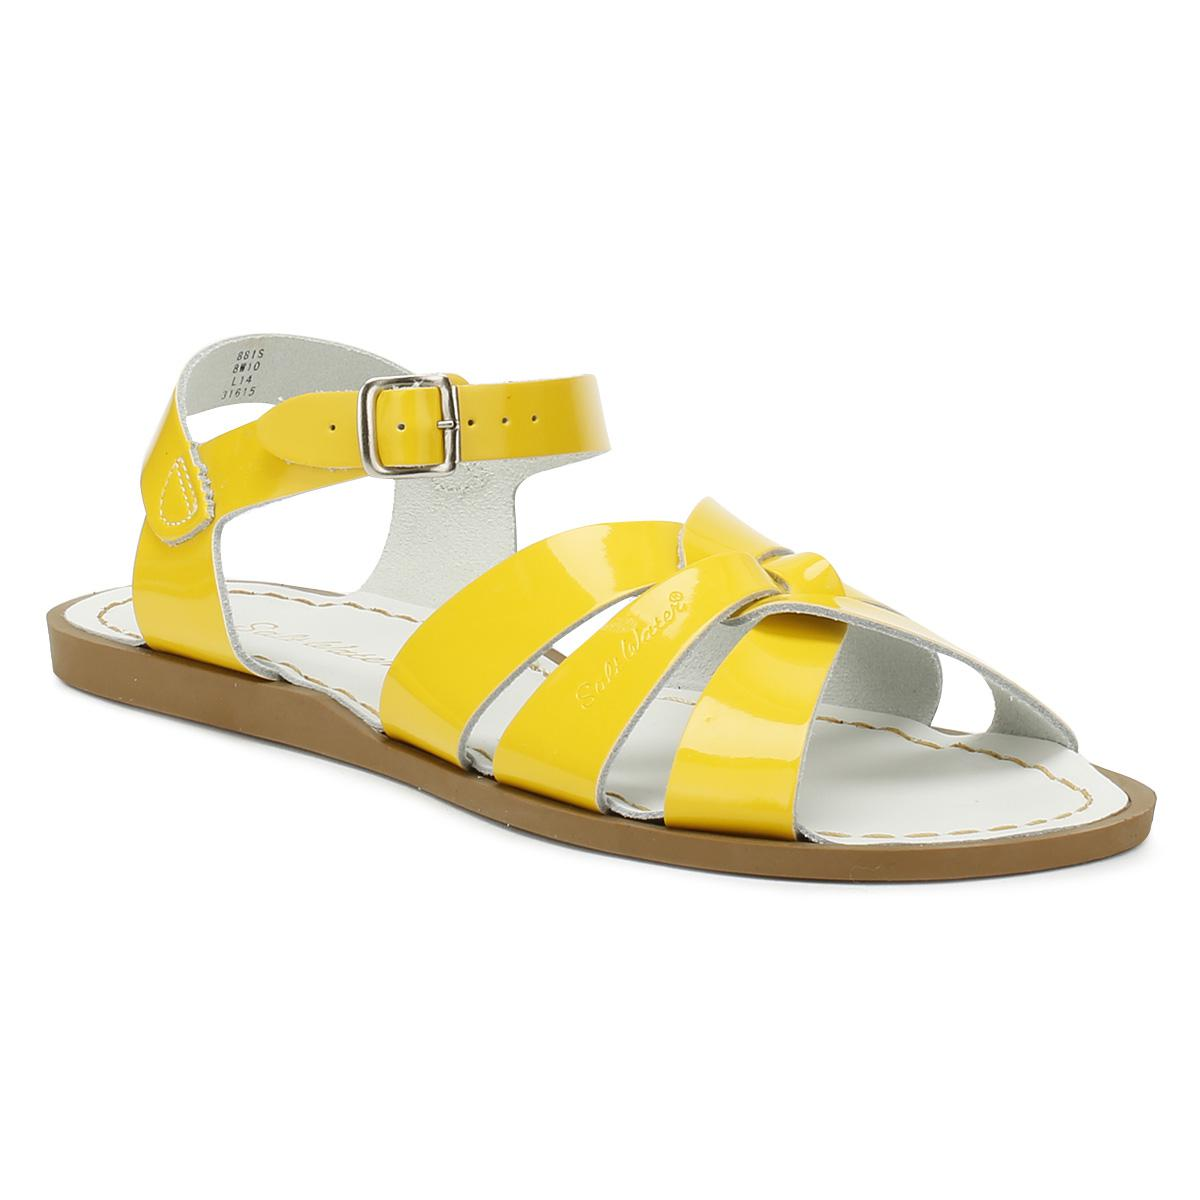 18d73a953614 Salt Water Womens Shiny Yellow Original Sandals in Yellow - Lyst salt water  sandals womens yellow